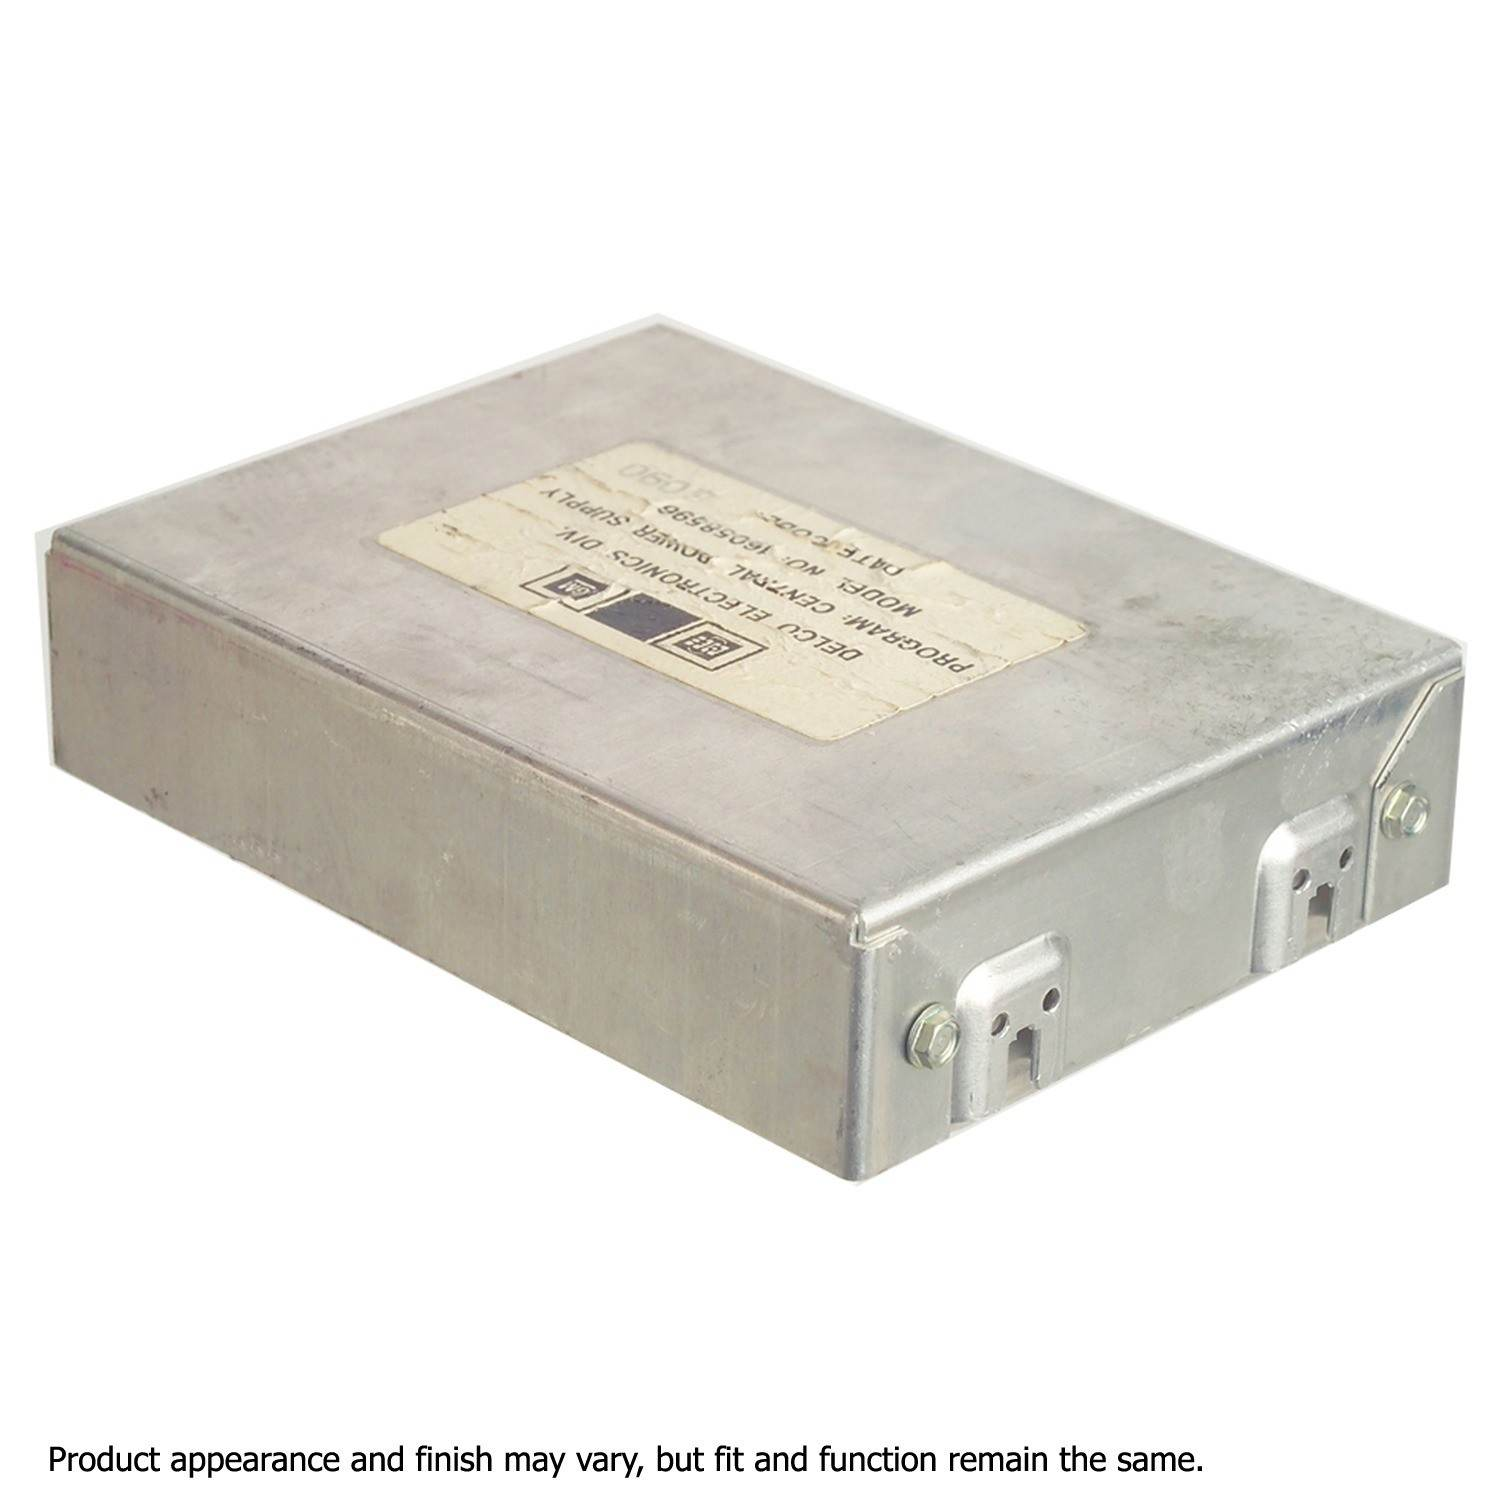 CARDONE / A-1 CARDONE - Reman A-1 Cardone Power Supply Module - A1C 73-8596